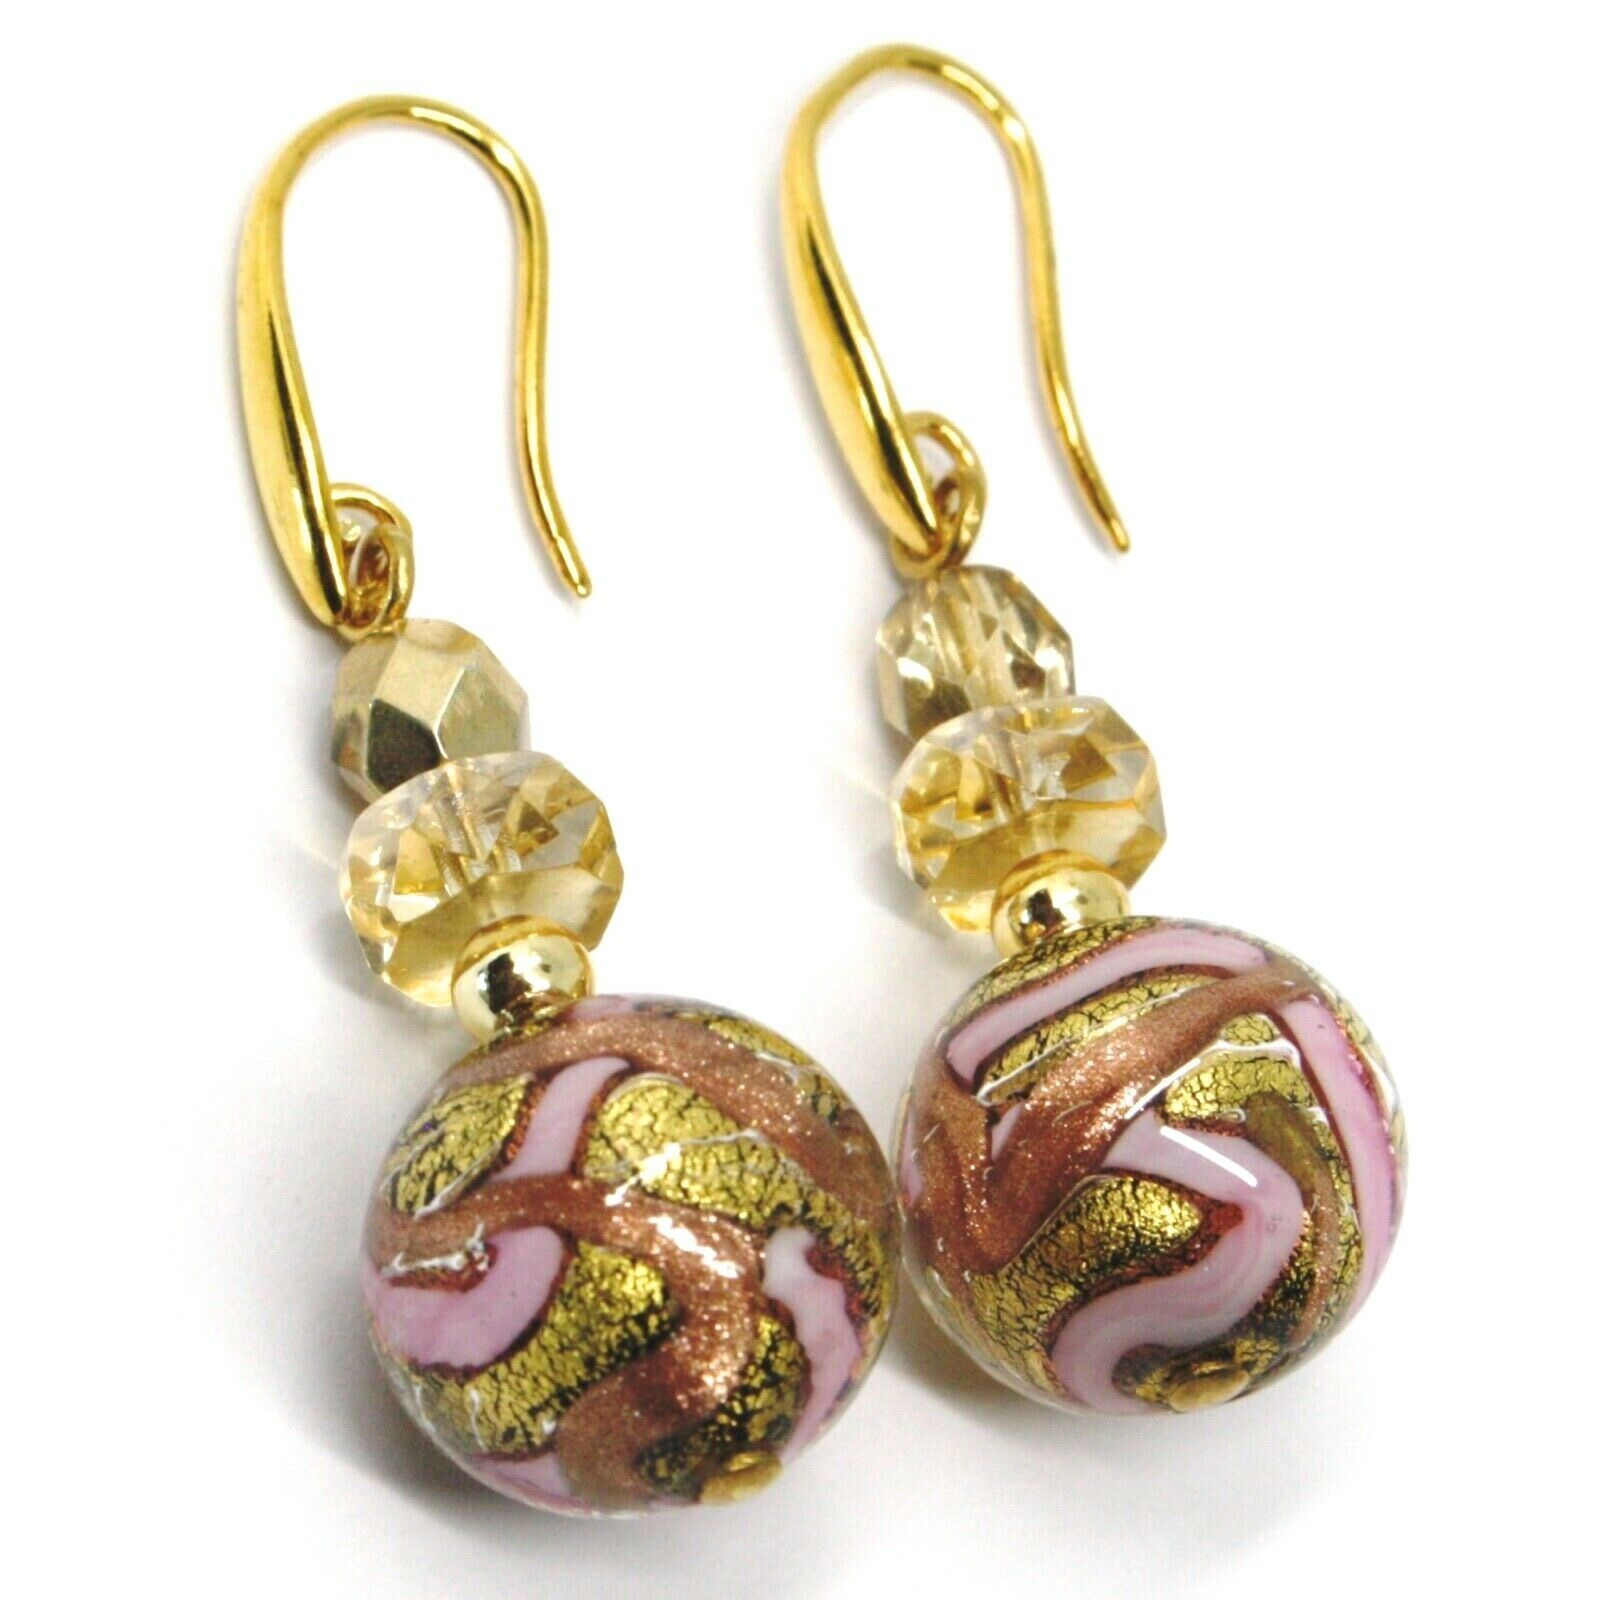 PENDANT EARRINGS PINK STRIPED MURANO GLASS SPHERE & GOLD LEAF, MADE IN ITALY